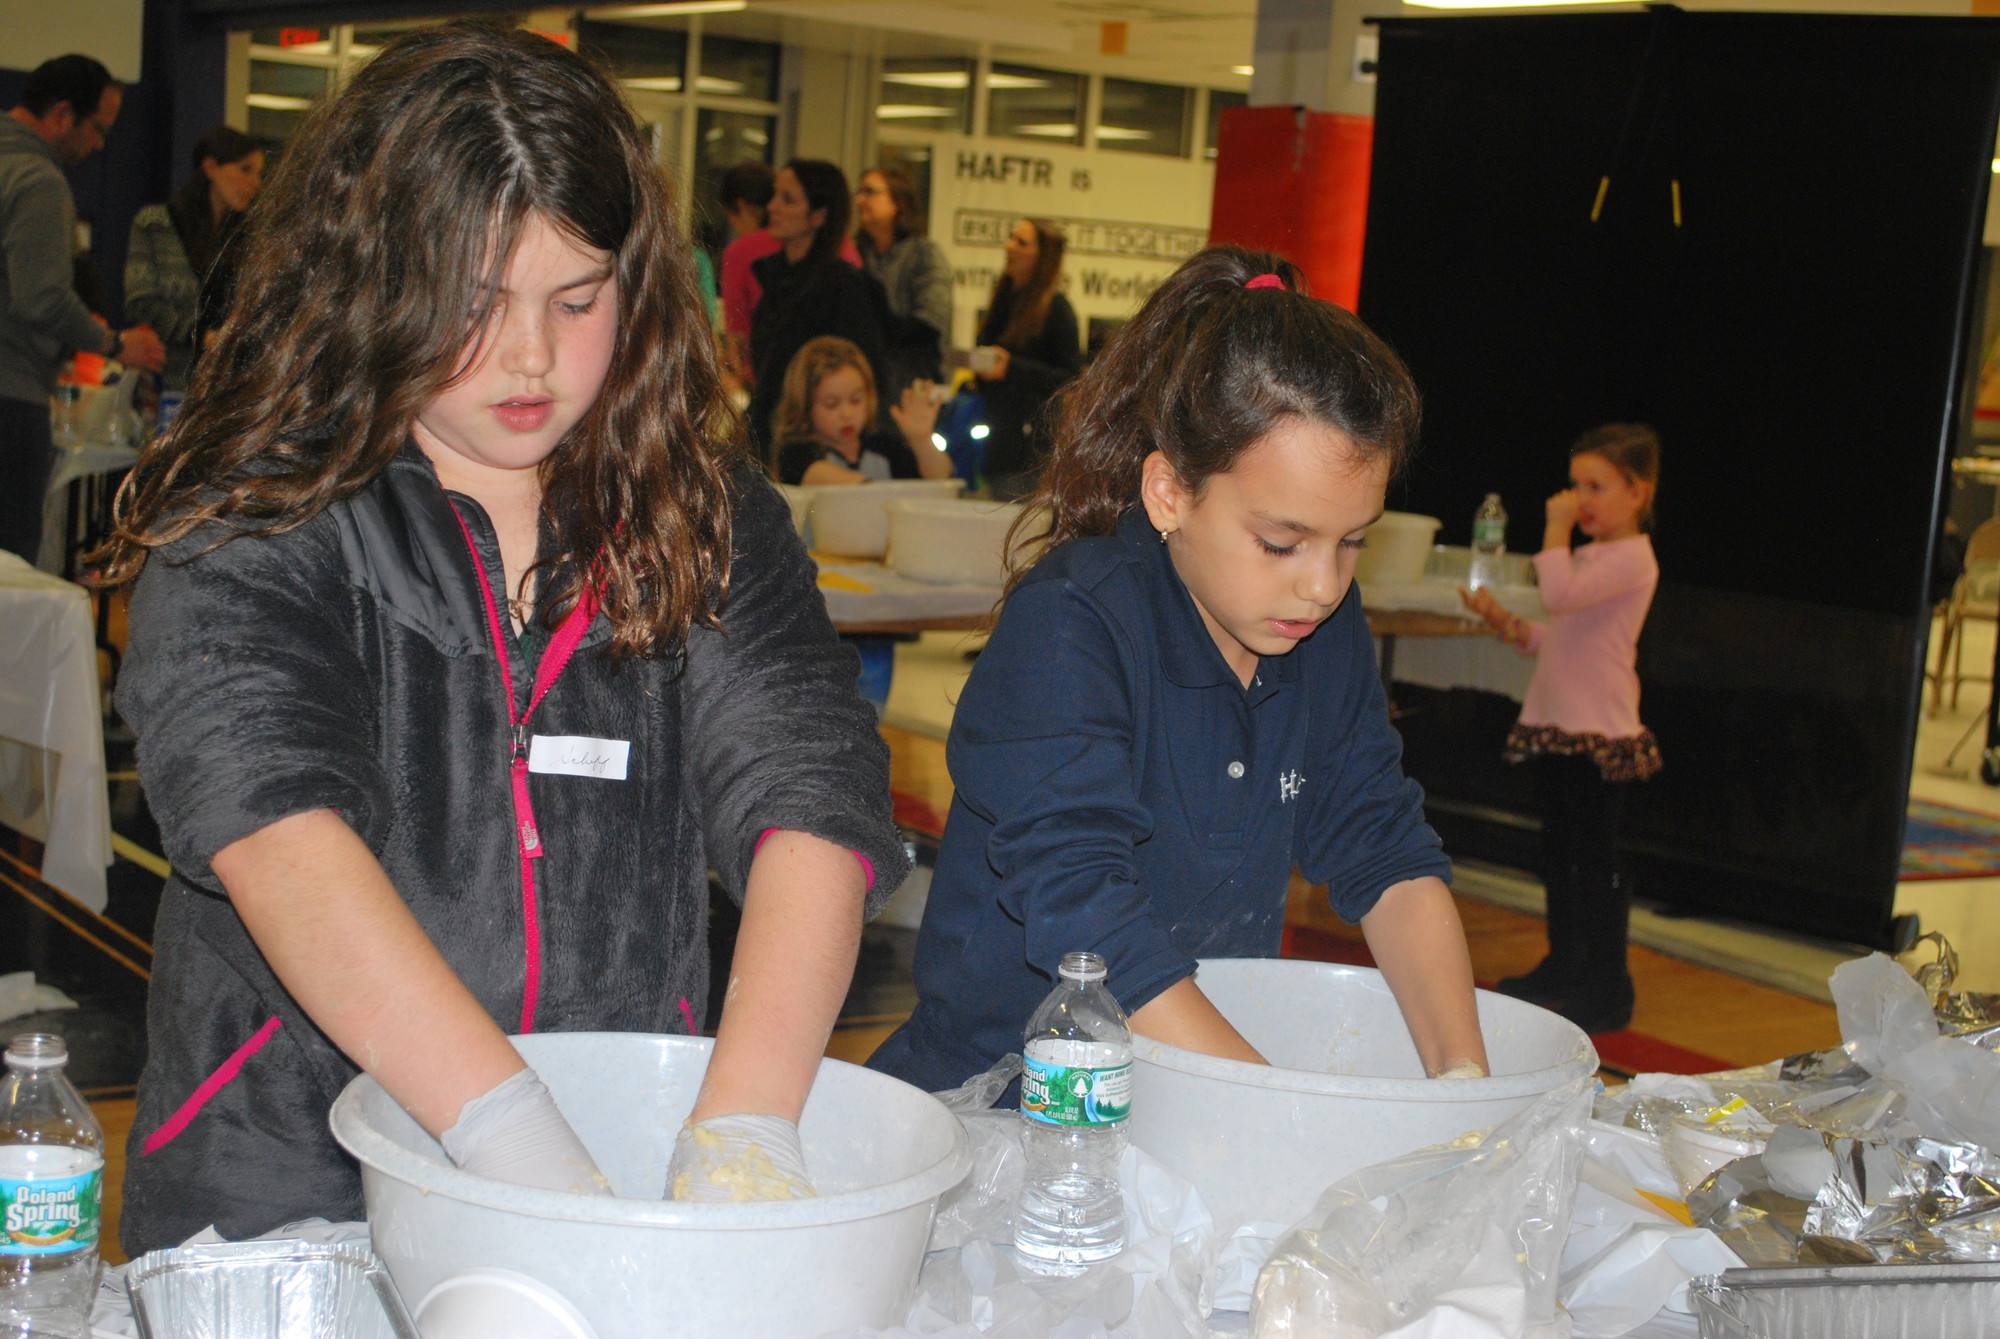 HAFTR middle School fifth-graders, Sofia Schiff, left, and Noa Kerity, both 10, kneading the challah bread dough.